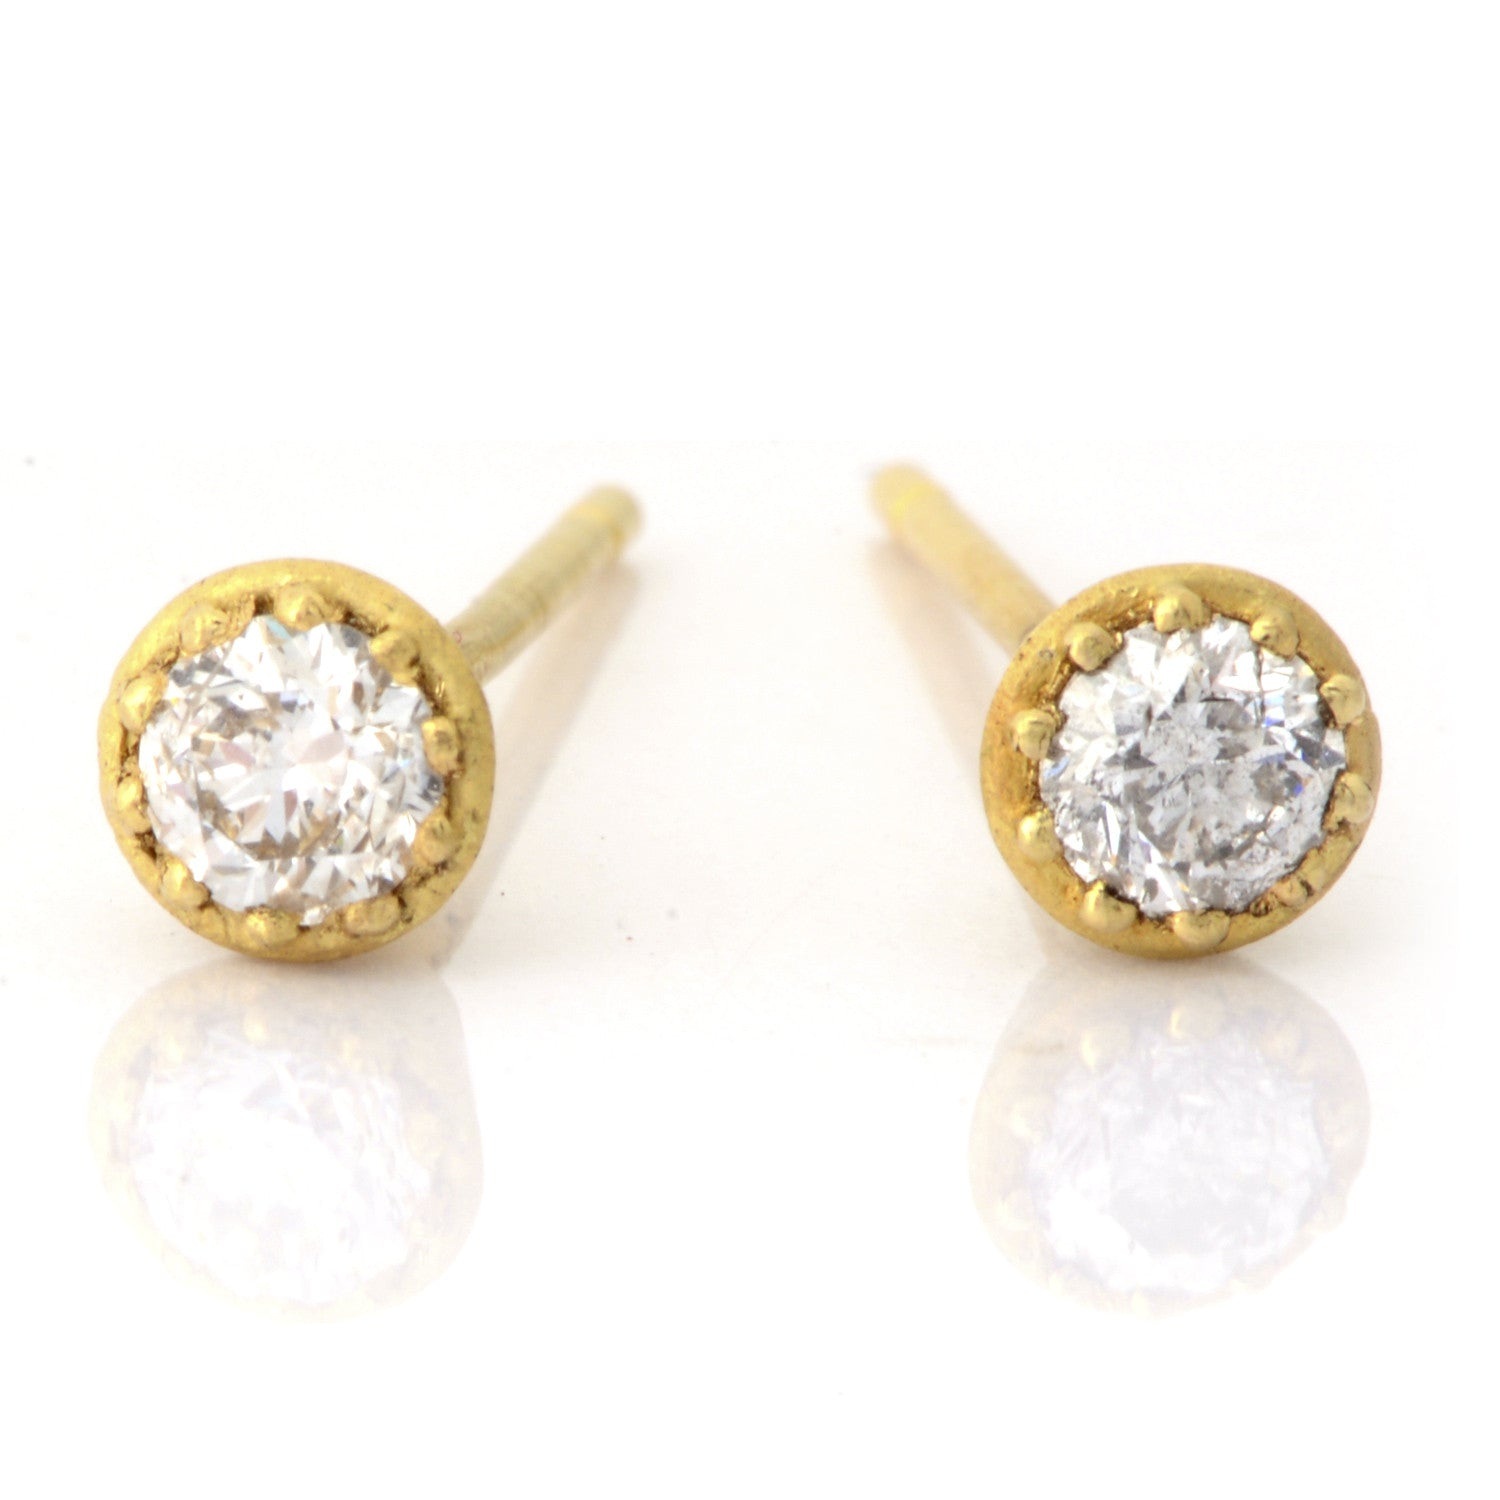 champagne pin on etsy carats stud vividgemsonetsy by gift diamond earrings